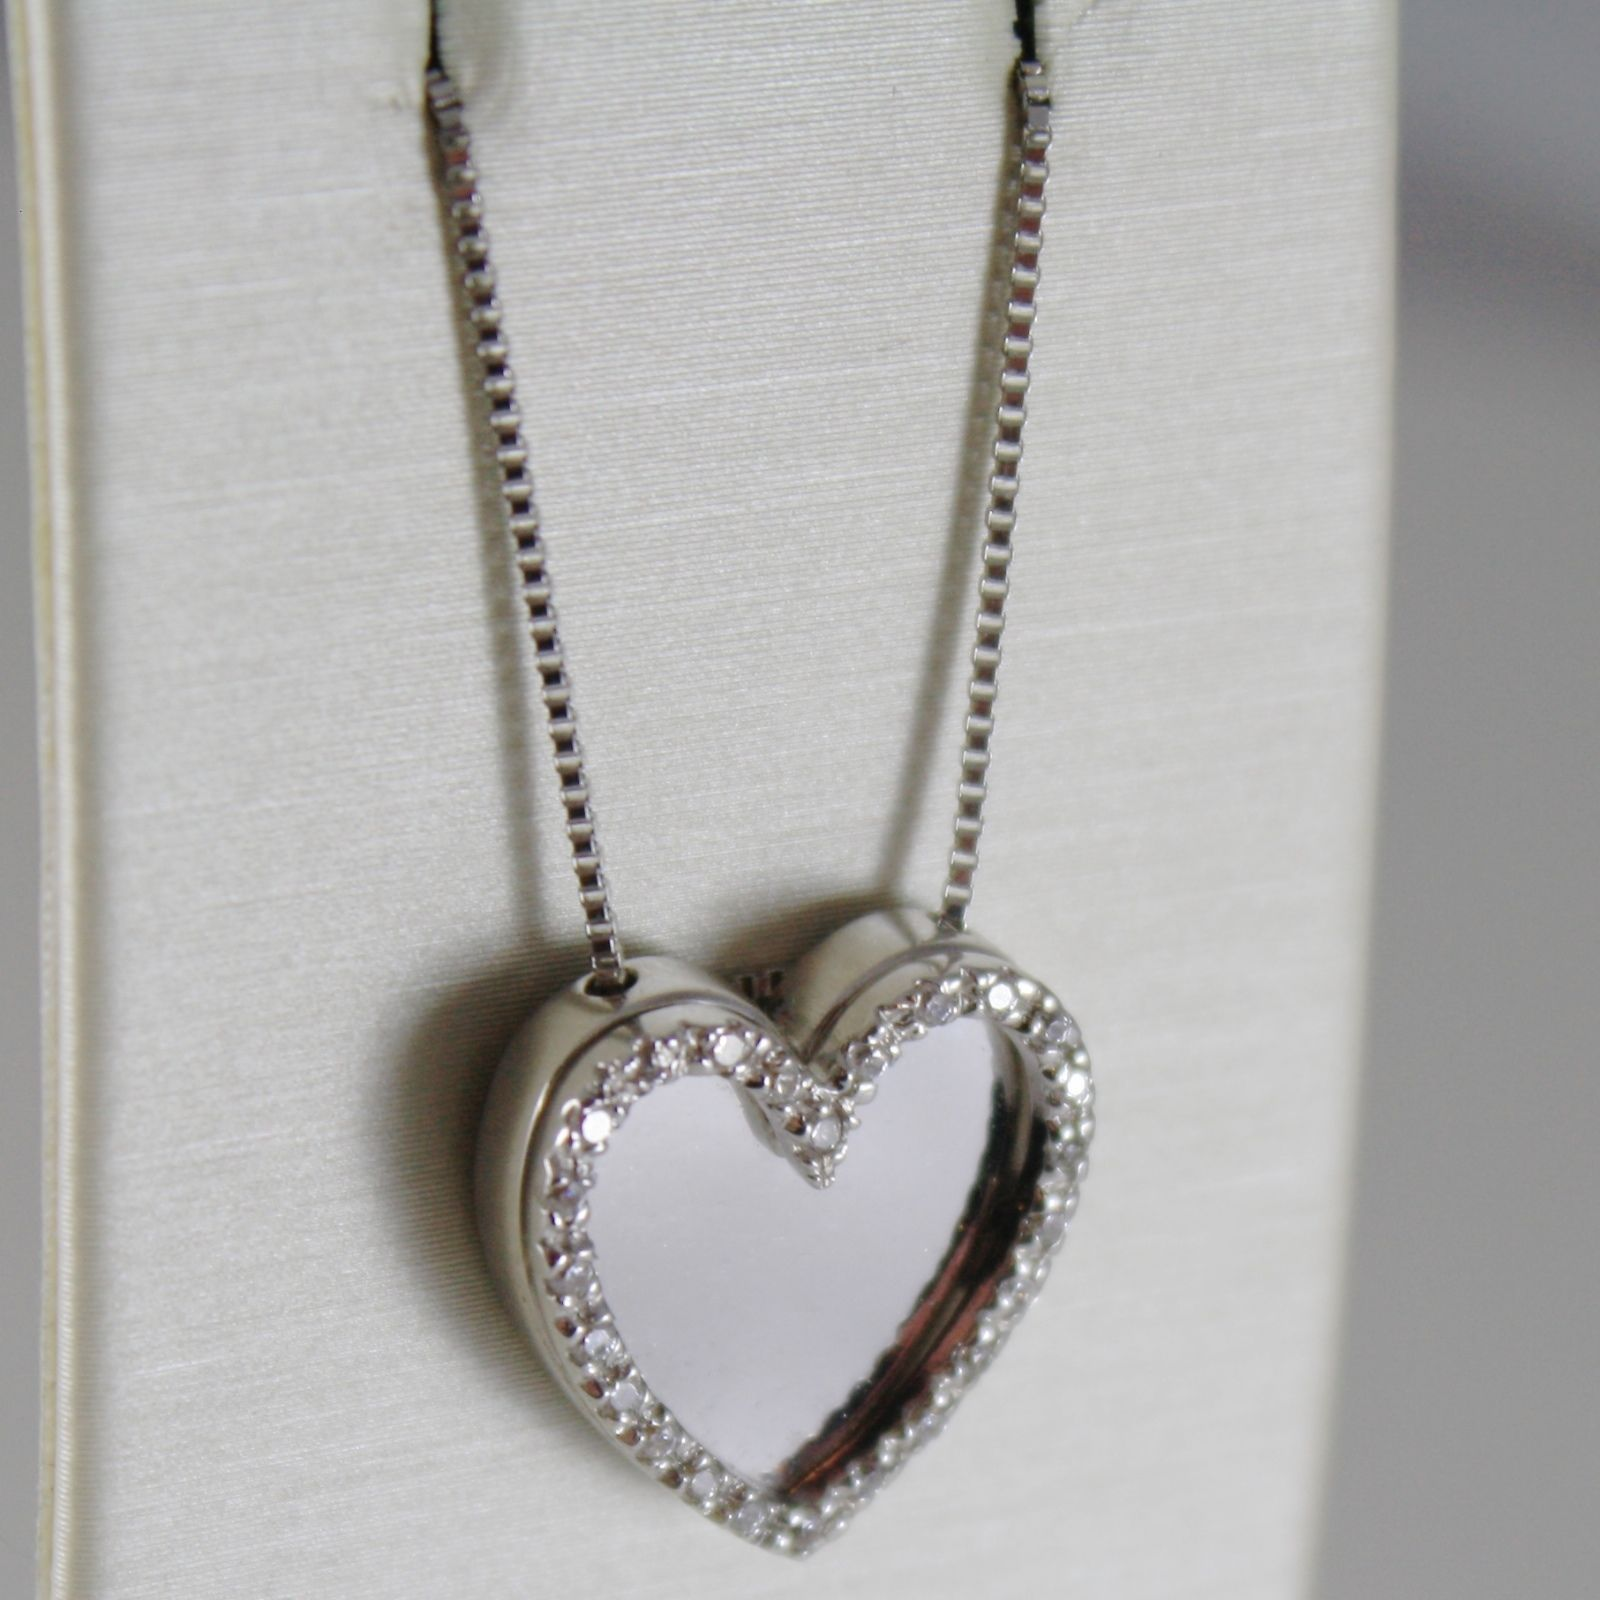 18K WHITE GOLD CHAIN NECKLACE, STYLIZED HEART WITH ZIRCONIA, MADE IN ITALY